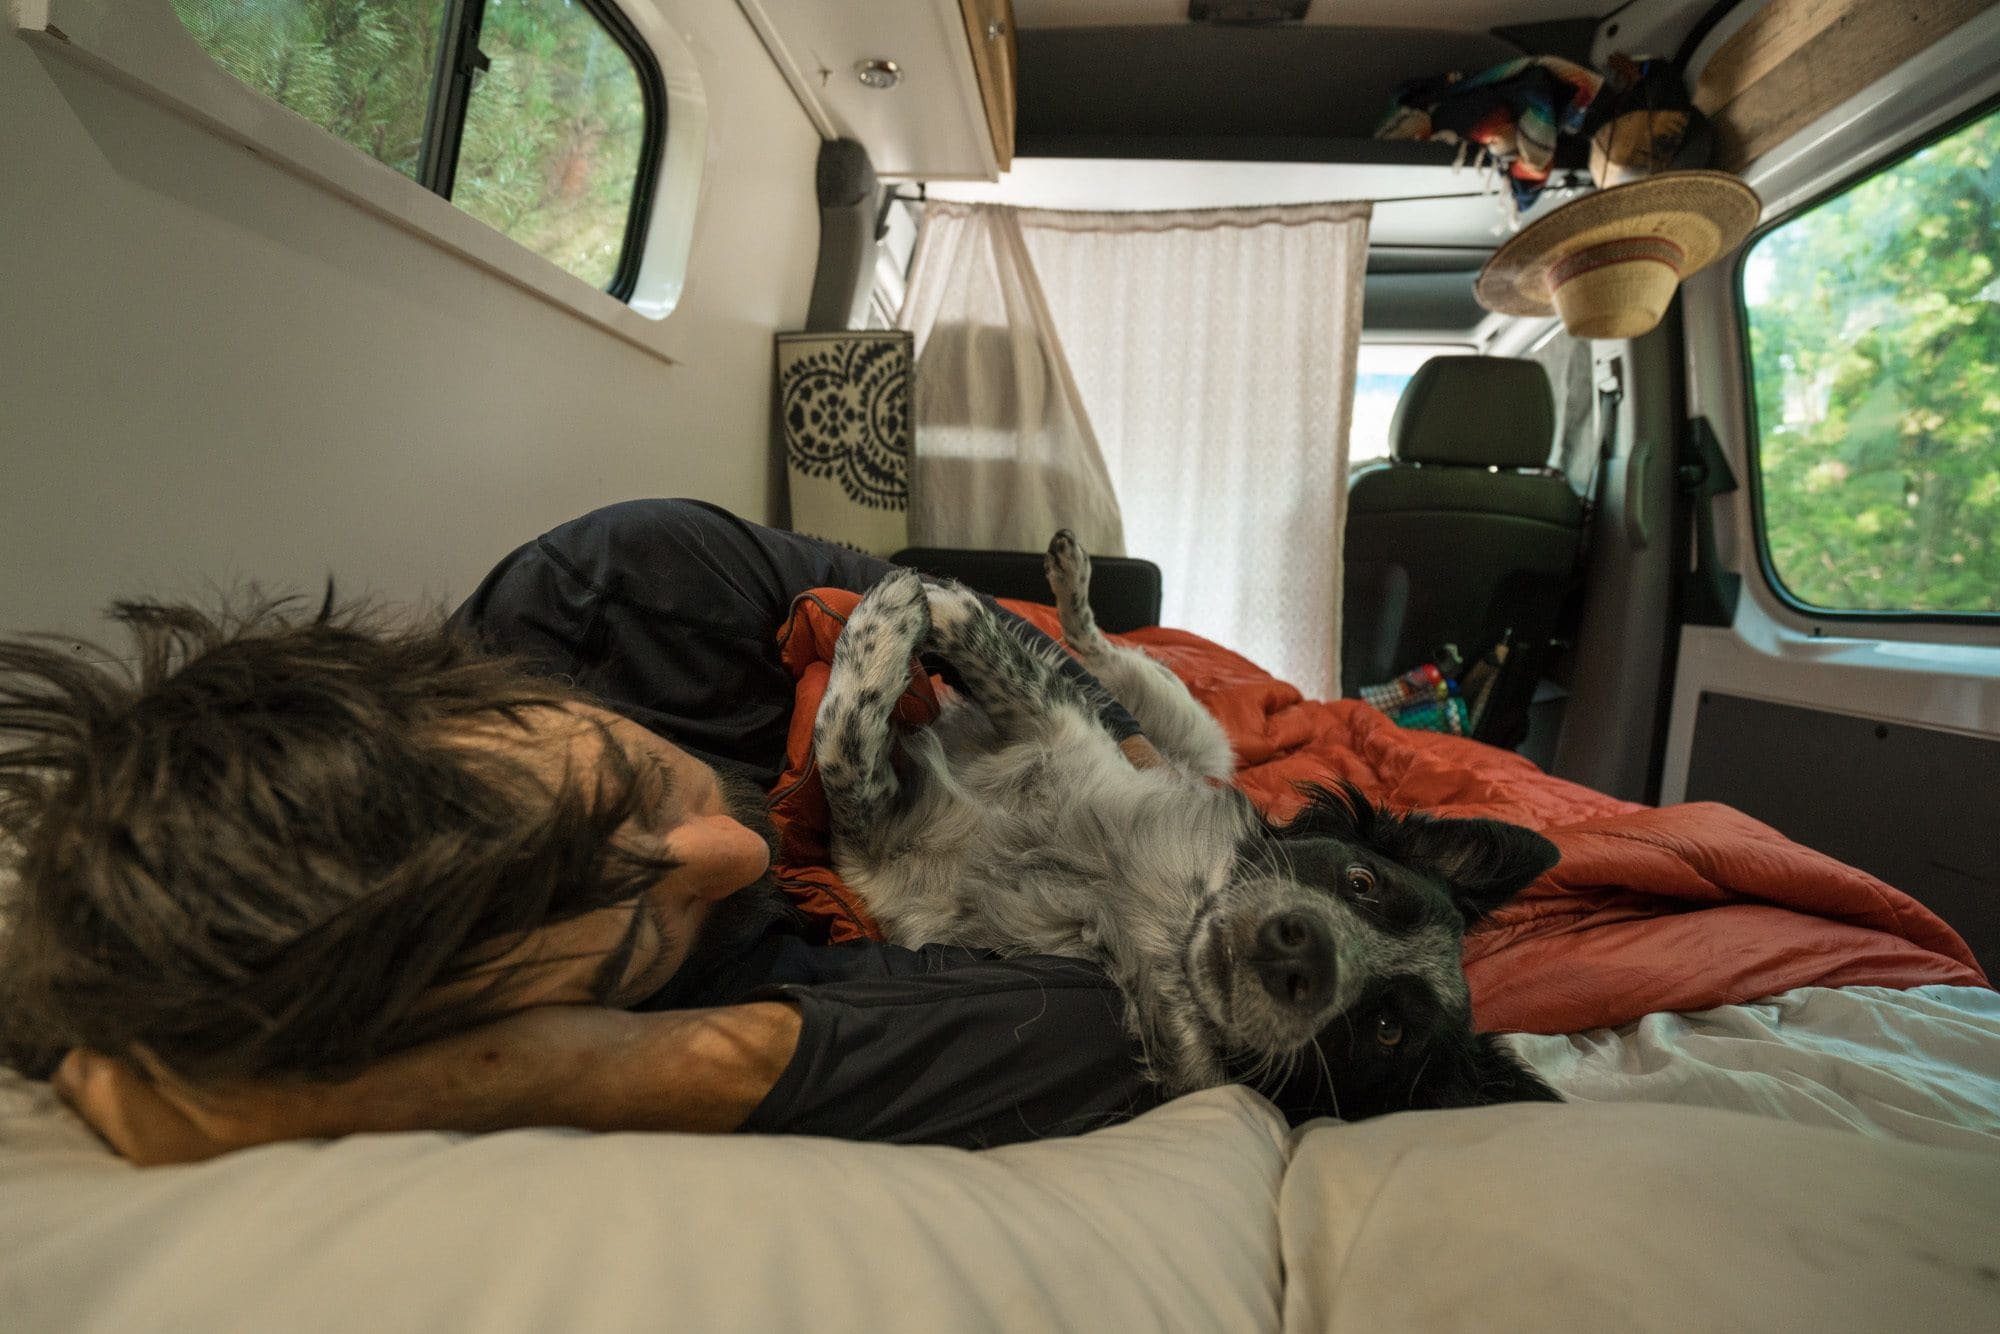 Curious about van life? Get answers in this Sprinter Van FAQ. How to find campsites, showering & laundry, finding community, safety, and more.